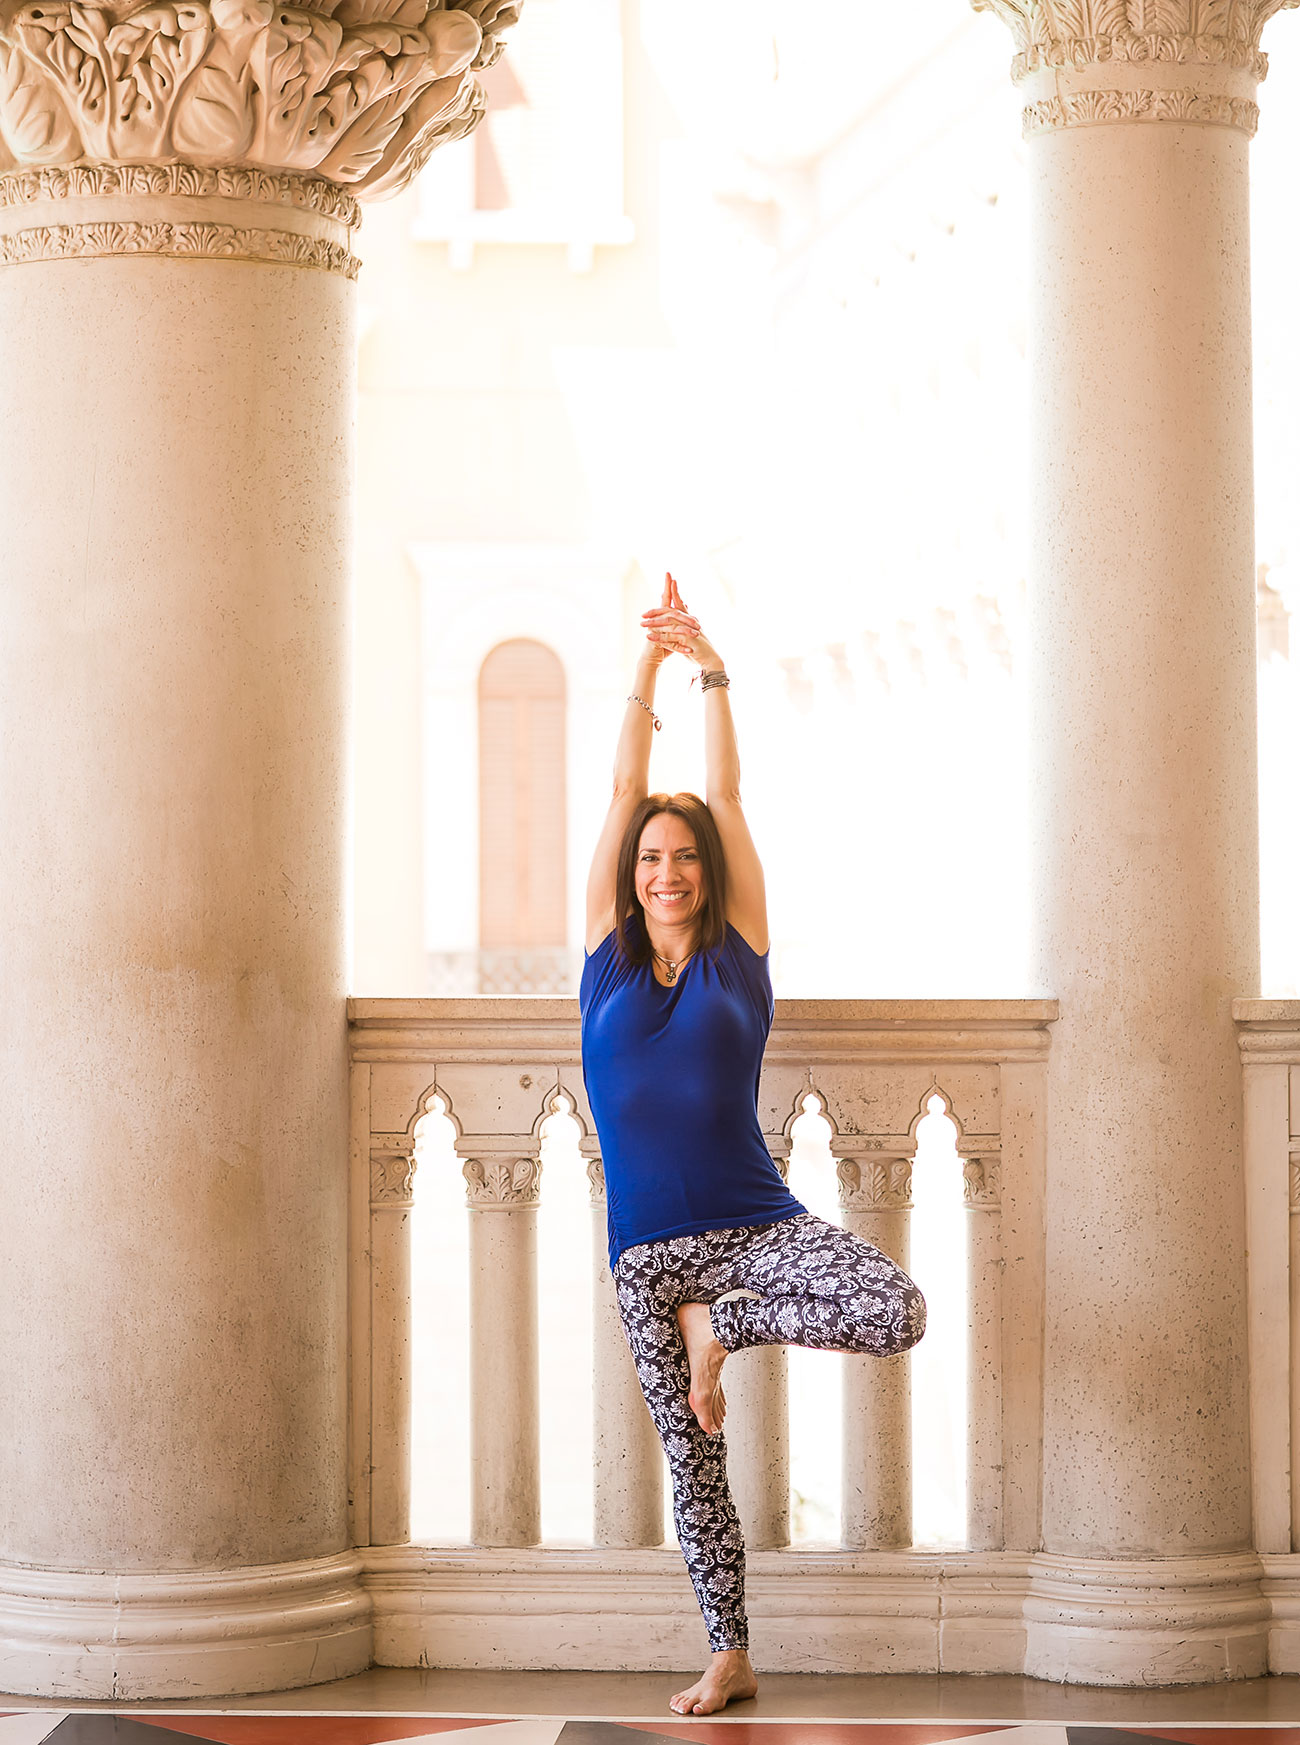 Kristin Ballantine | Owner of Skin and Body Balance